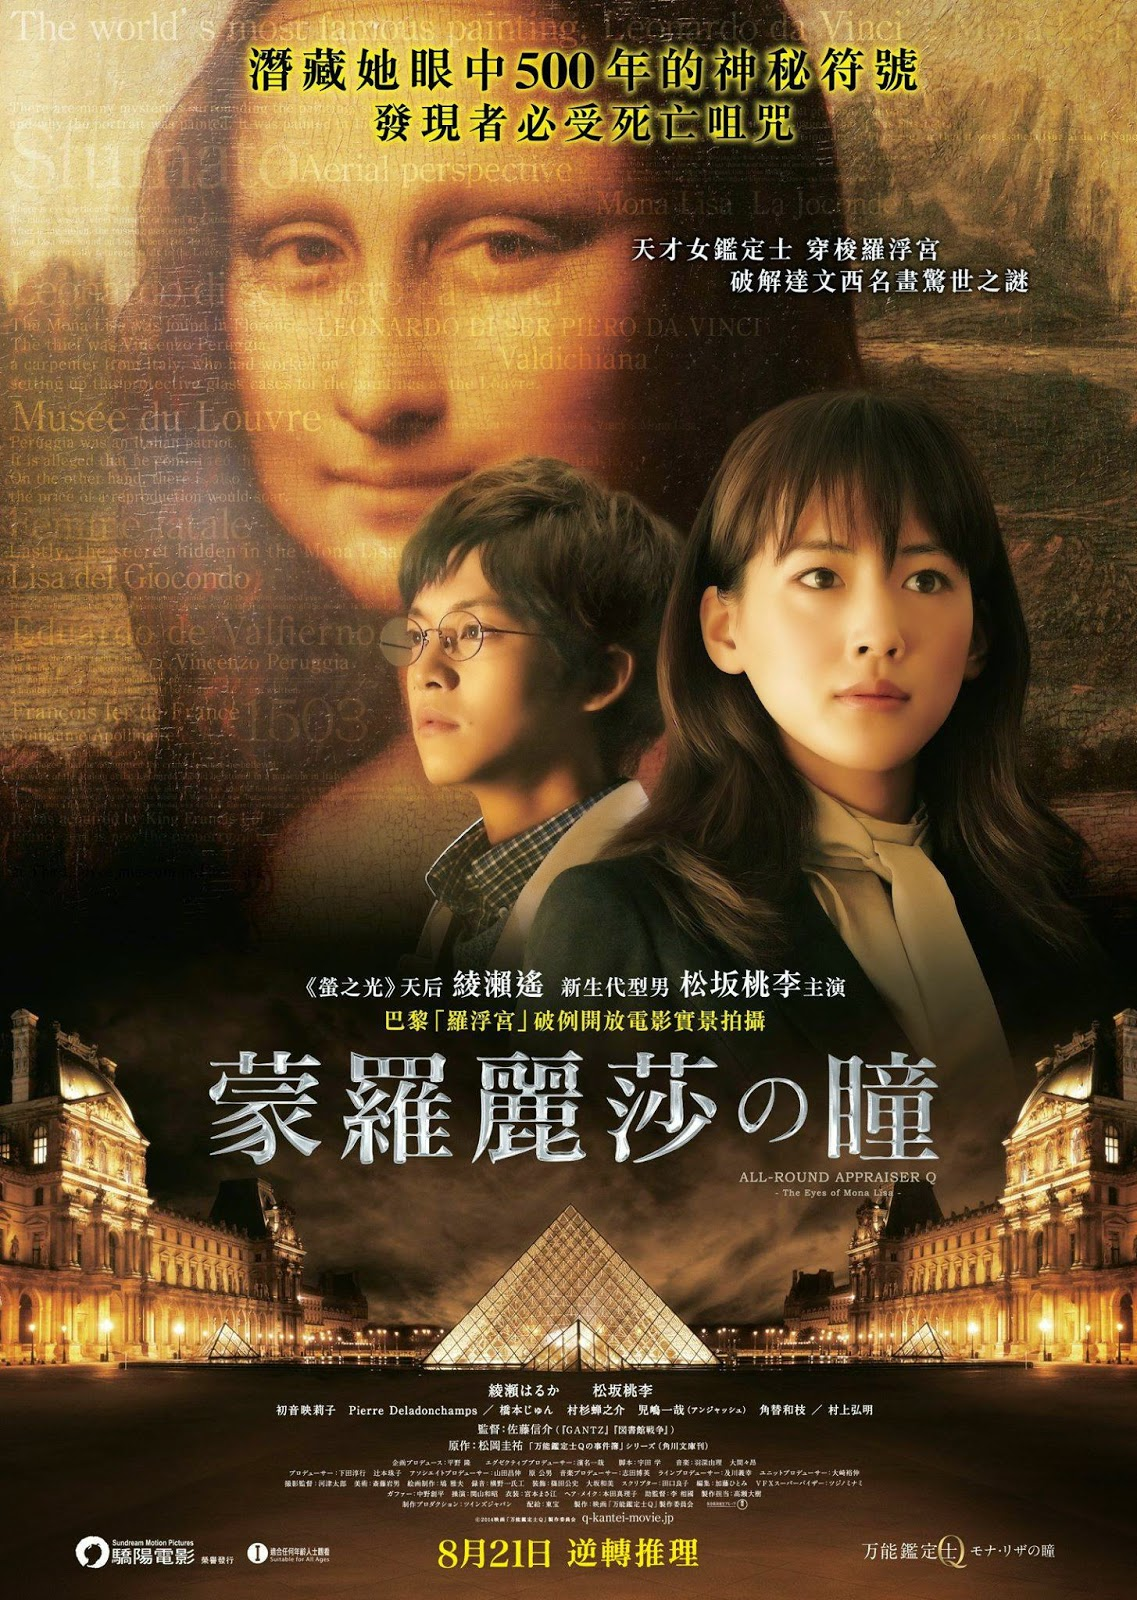 蒙羅麗莎の瞳/萬能鑑定士Q 蒙娜麗莎之瞳(All-Round Appraiser Q: The Eyes of Mona Lisa)poster